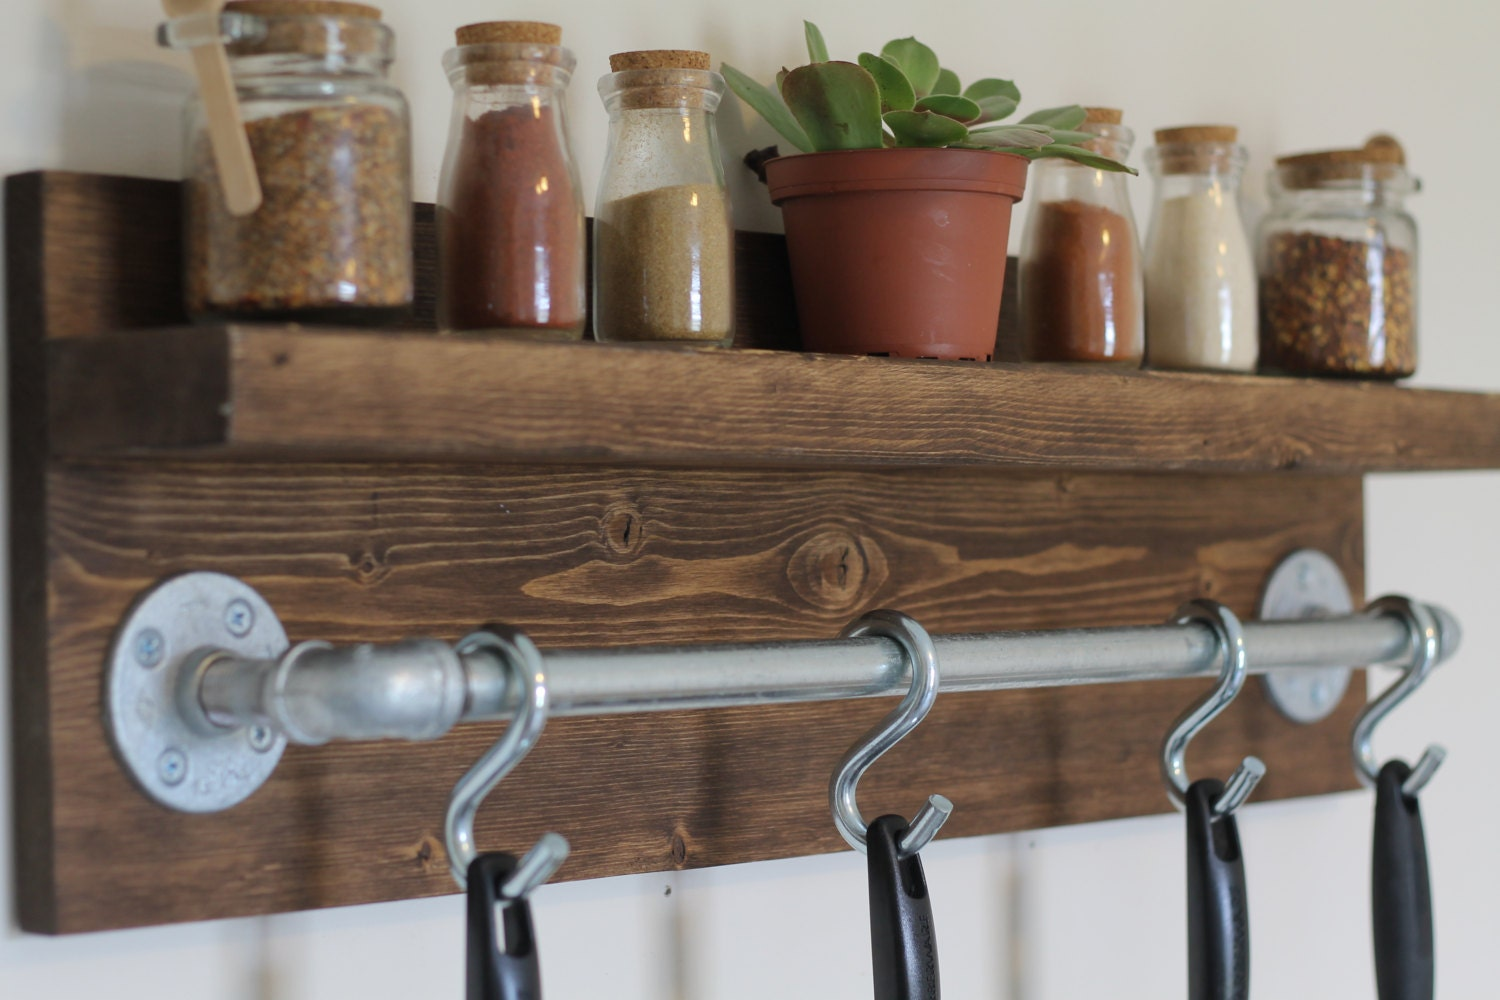 Rustic Industrial Kitchen Pot Rack Gifts For Him Wall Shelf